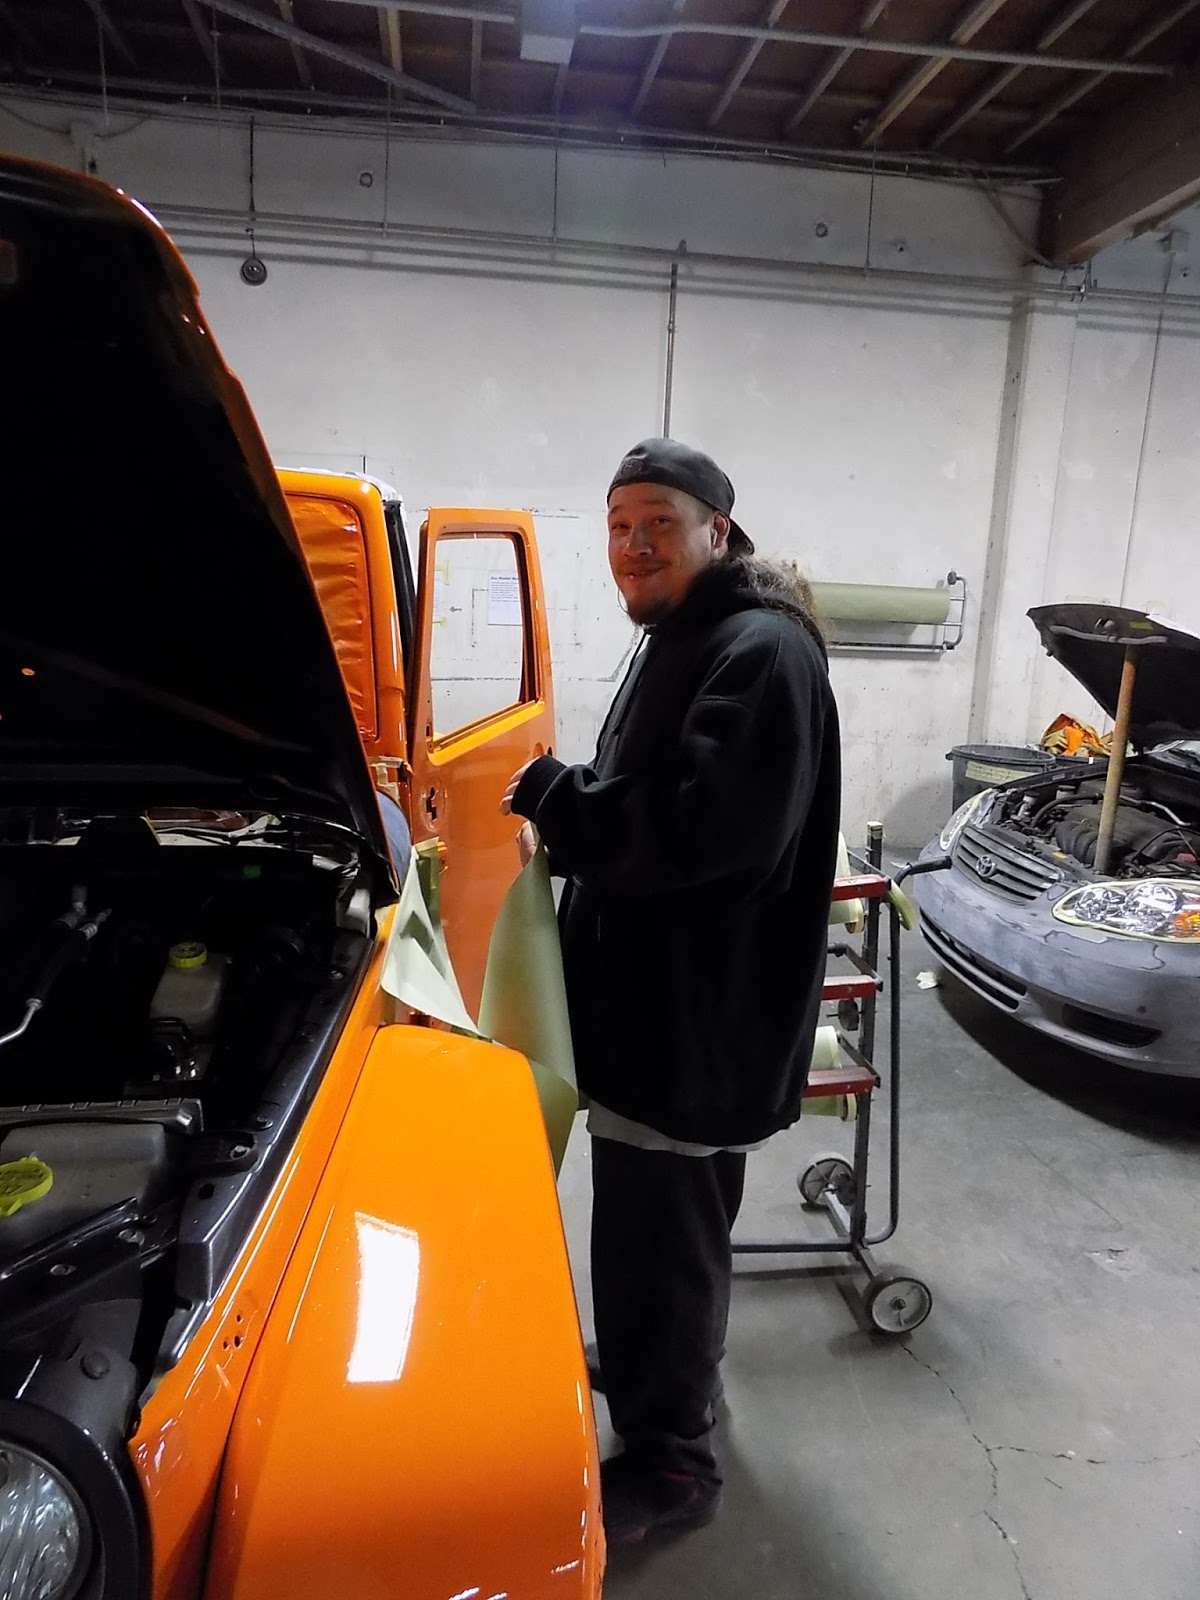 Union City Car Dealerships >> Auto Body-Collision Repair-Car Paint in Fremont-Hayward-Union City-San Francisco Bay: Employment ...